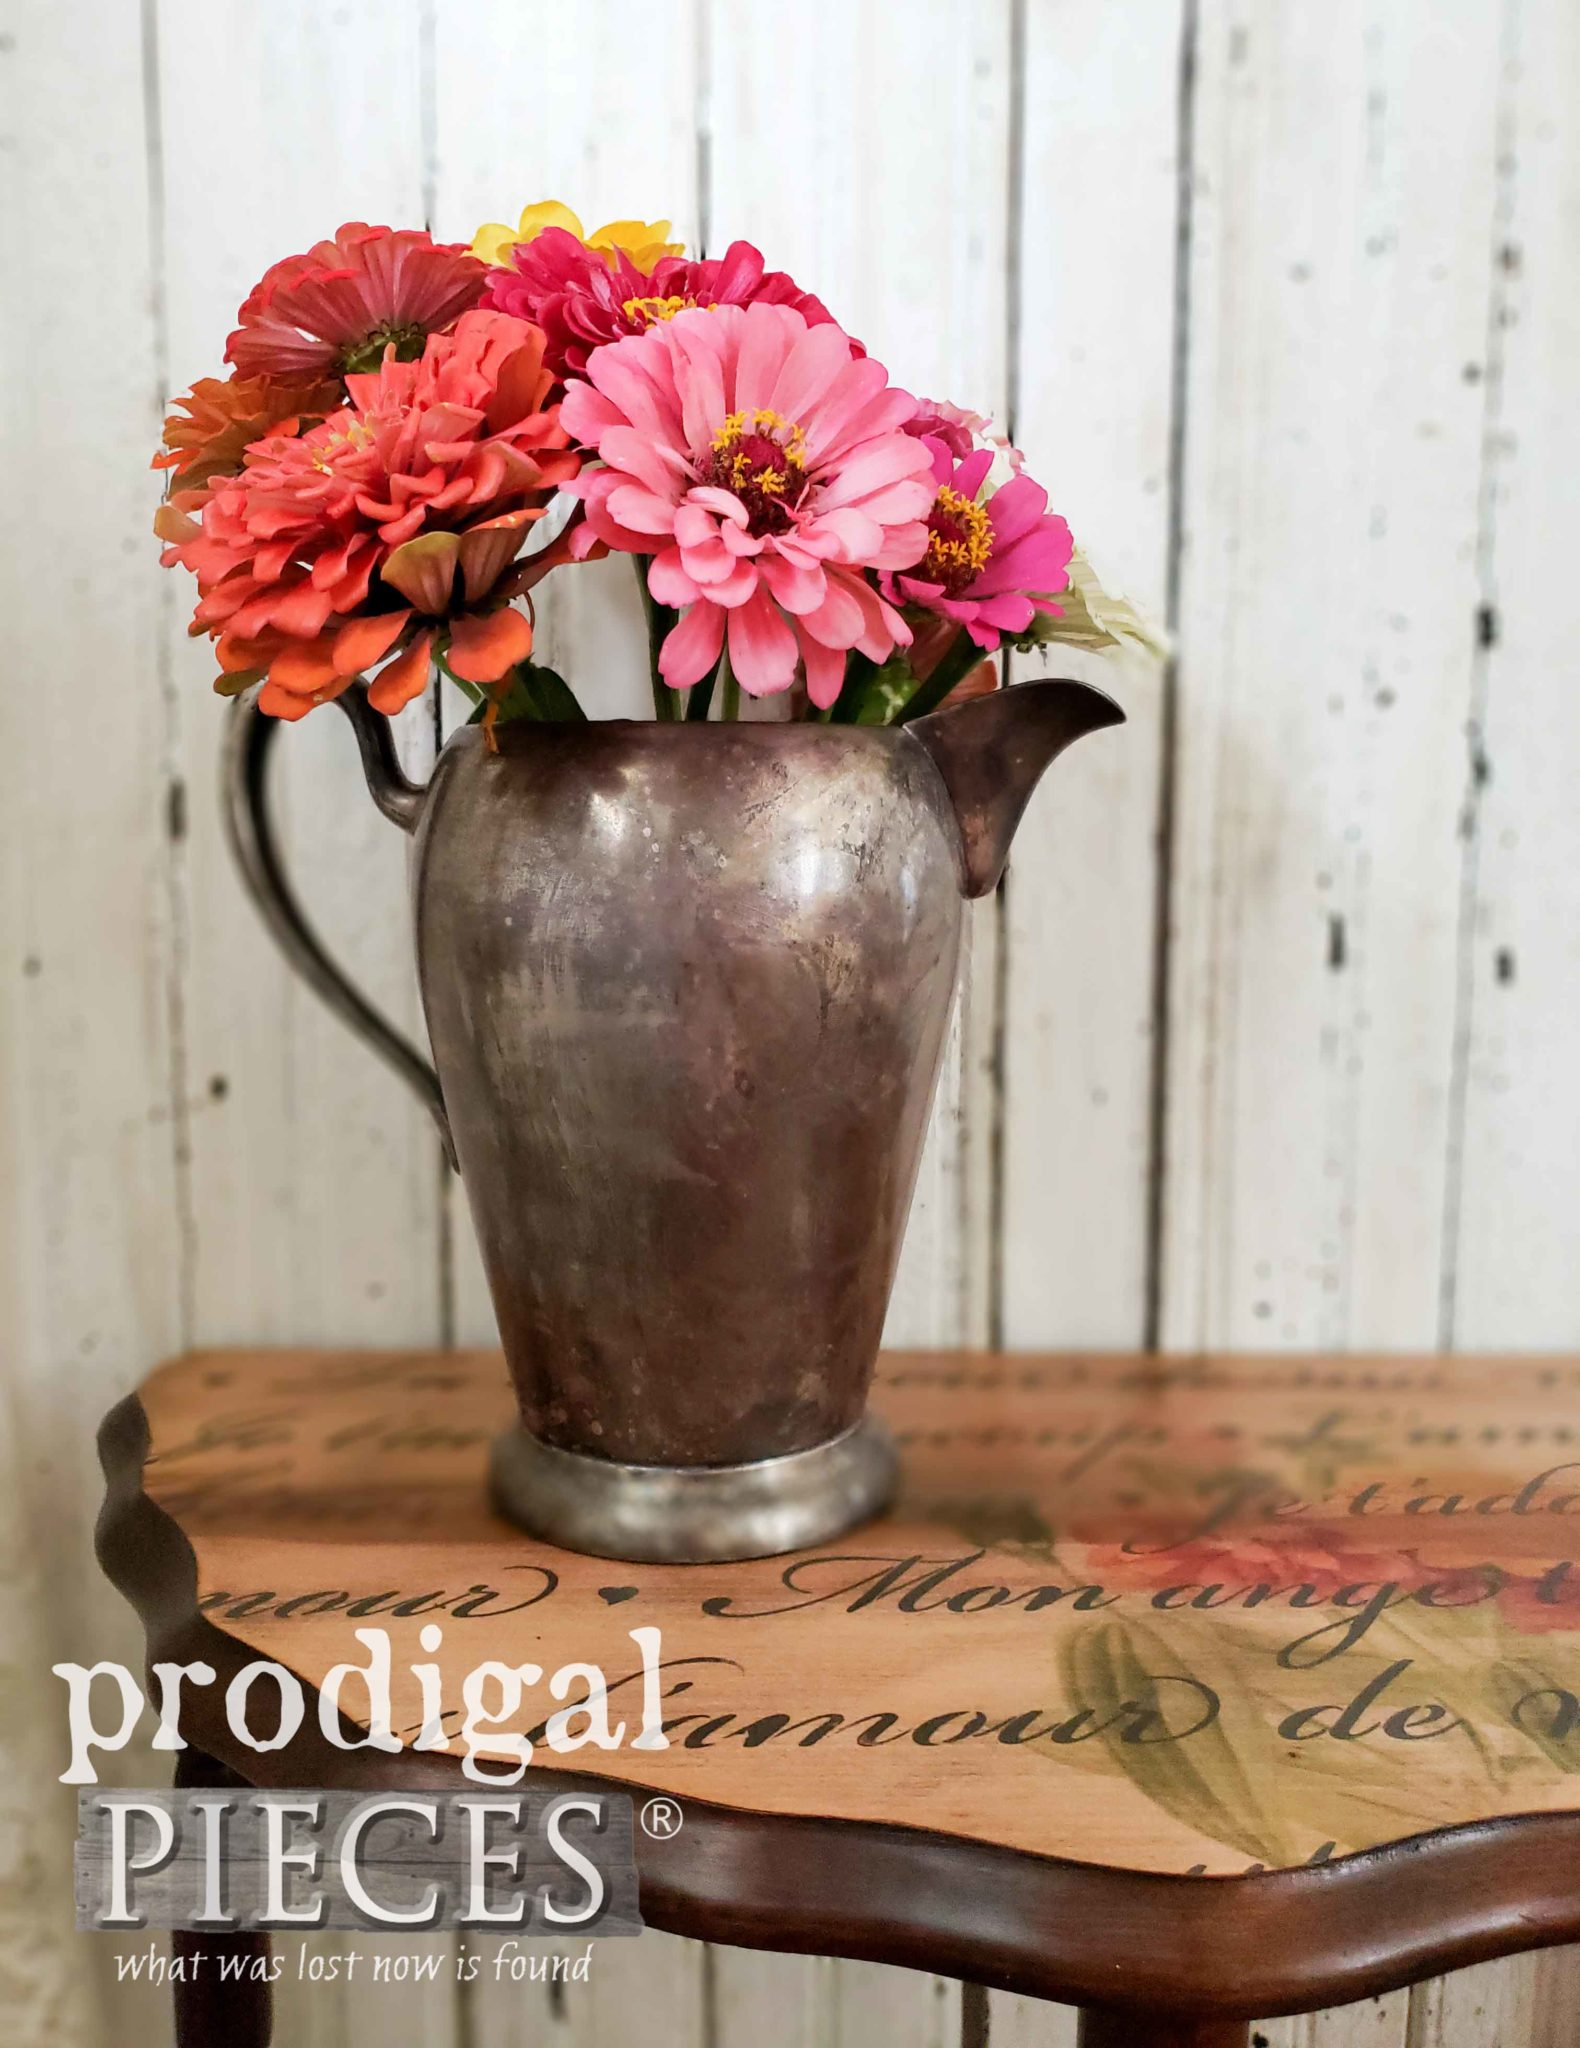 Vintage Pewter Pitcher of Zinnias on Repaired Table by Larissa of Prodigal Pieces | prodigalpieces.com